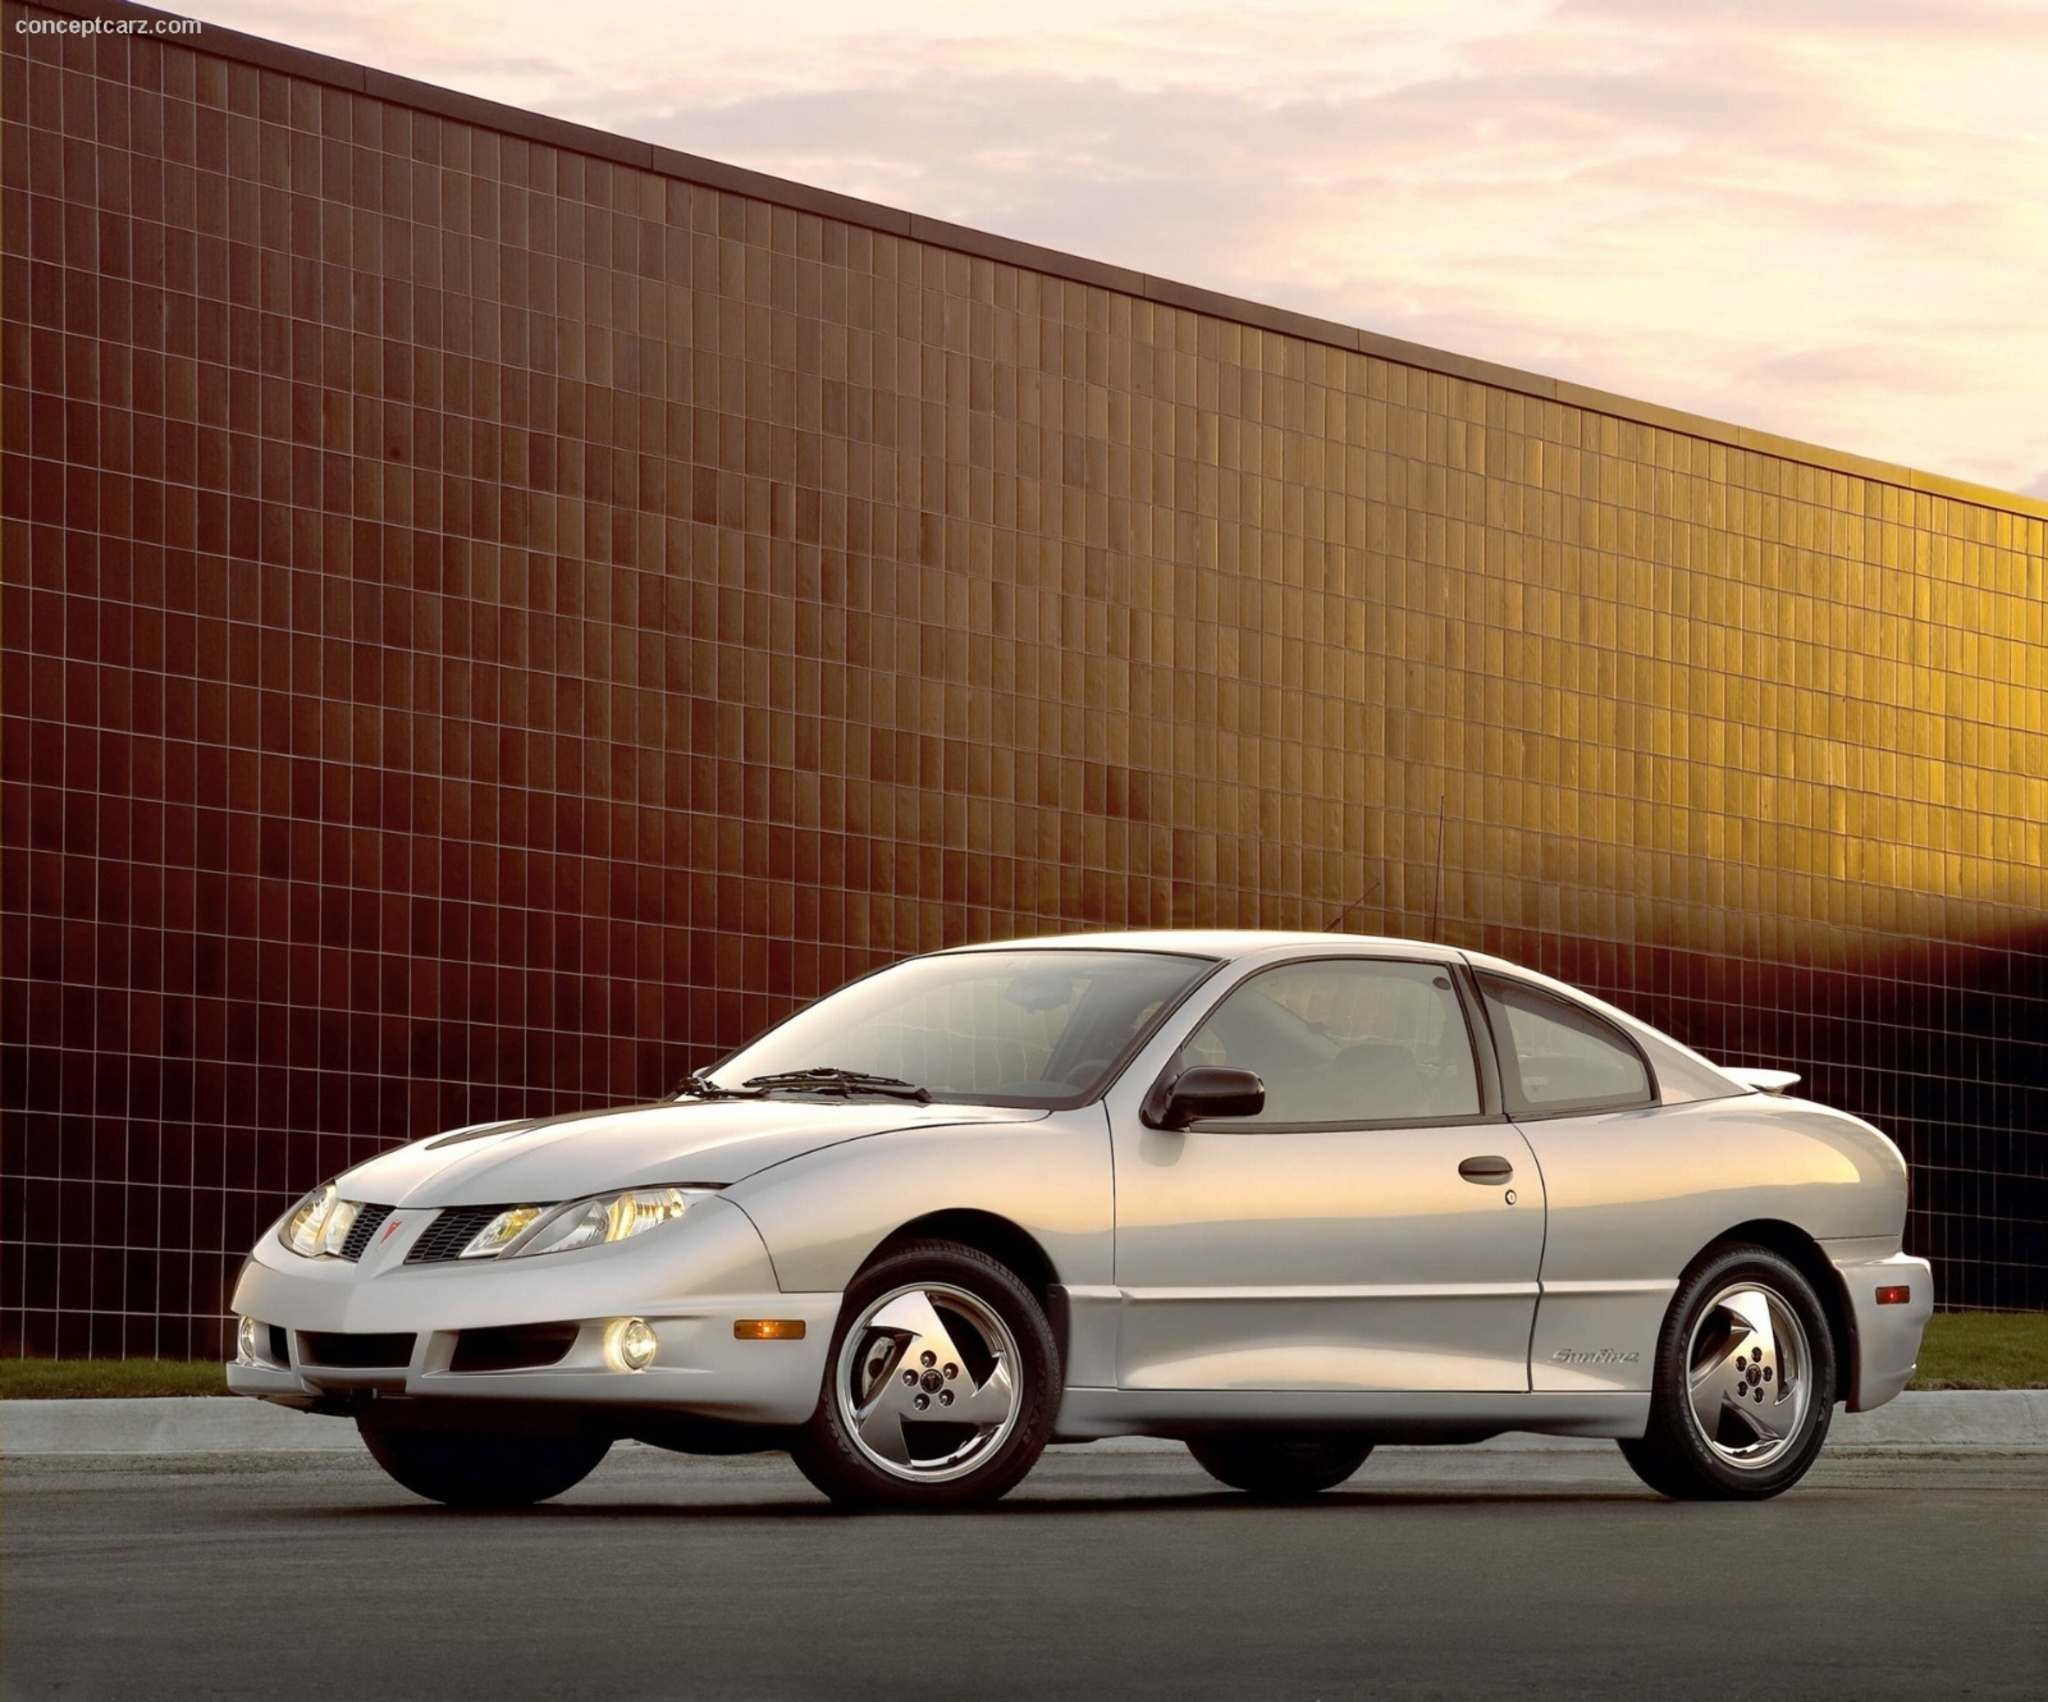 General MotorsA reader has notitced that his Pontiac Sunfire gets very loud once it goes faster than 65 km/h.